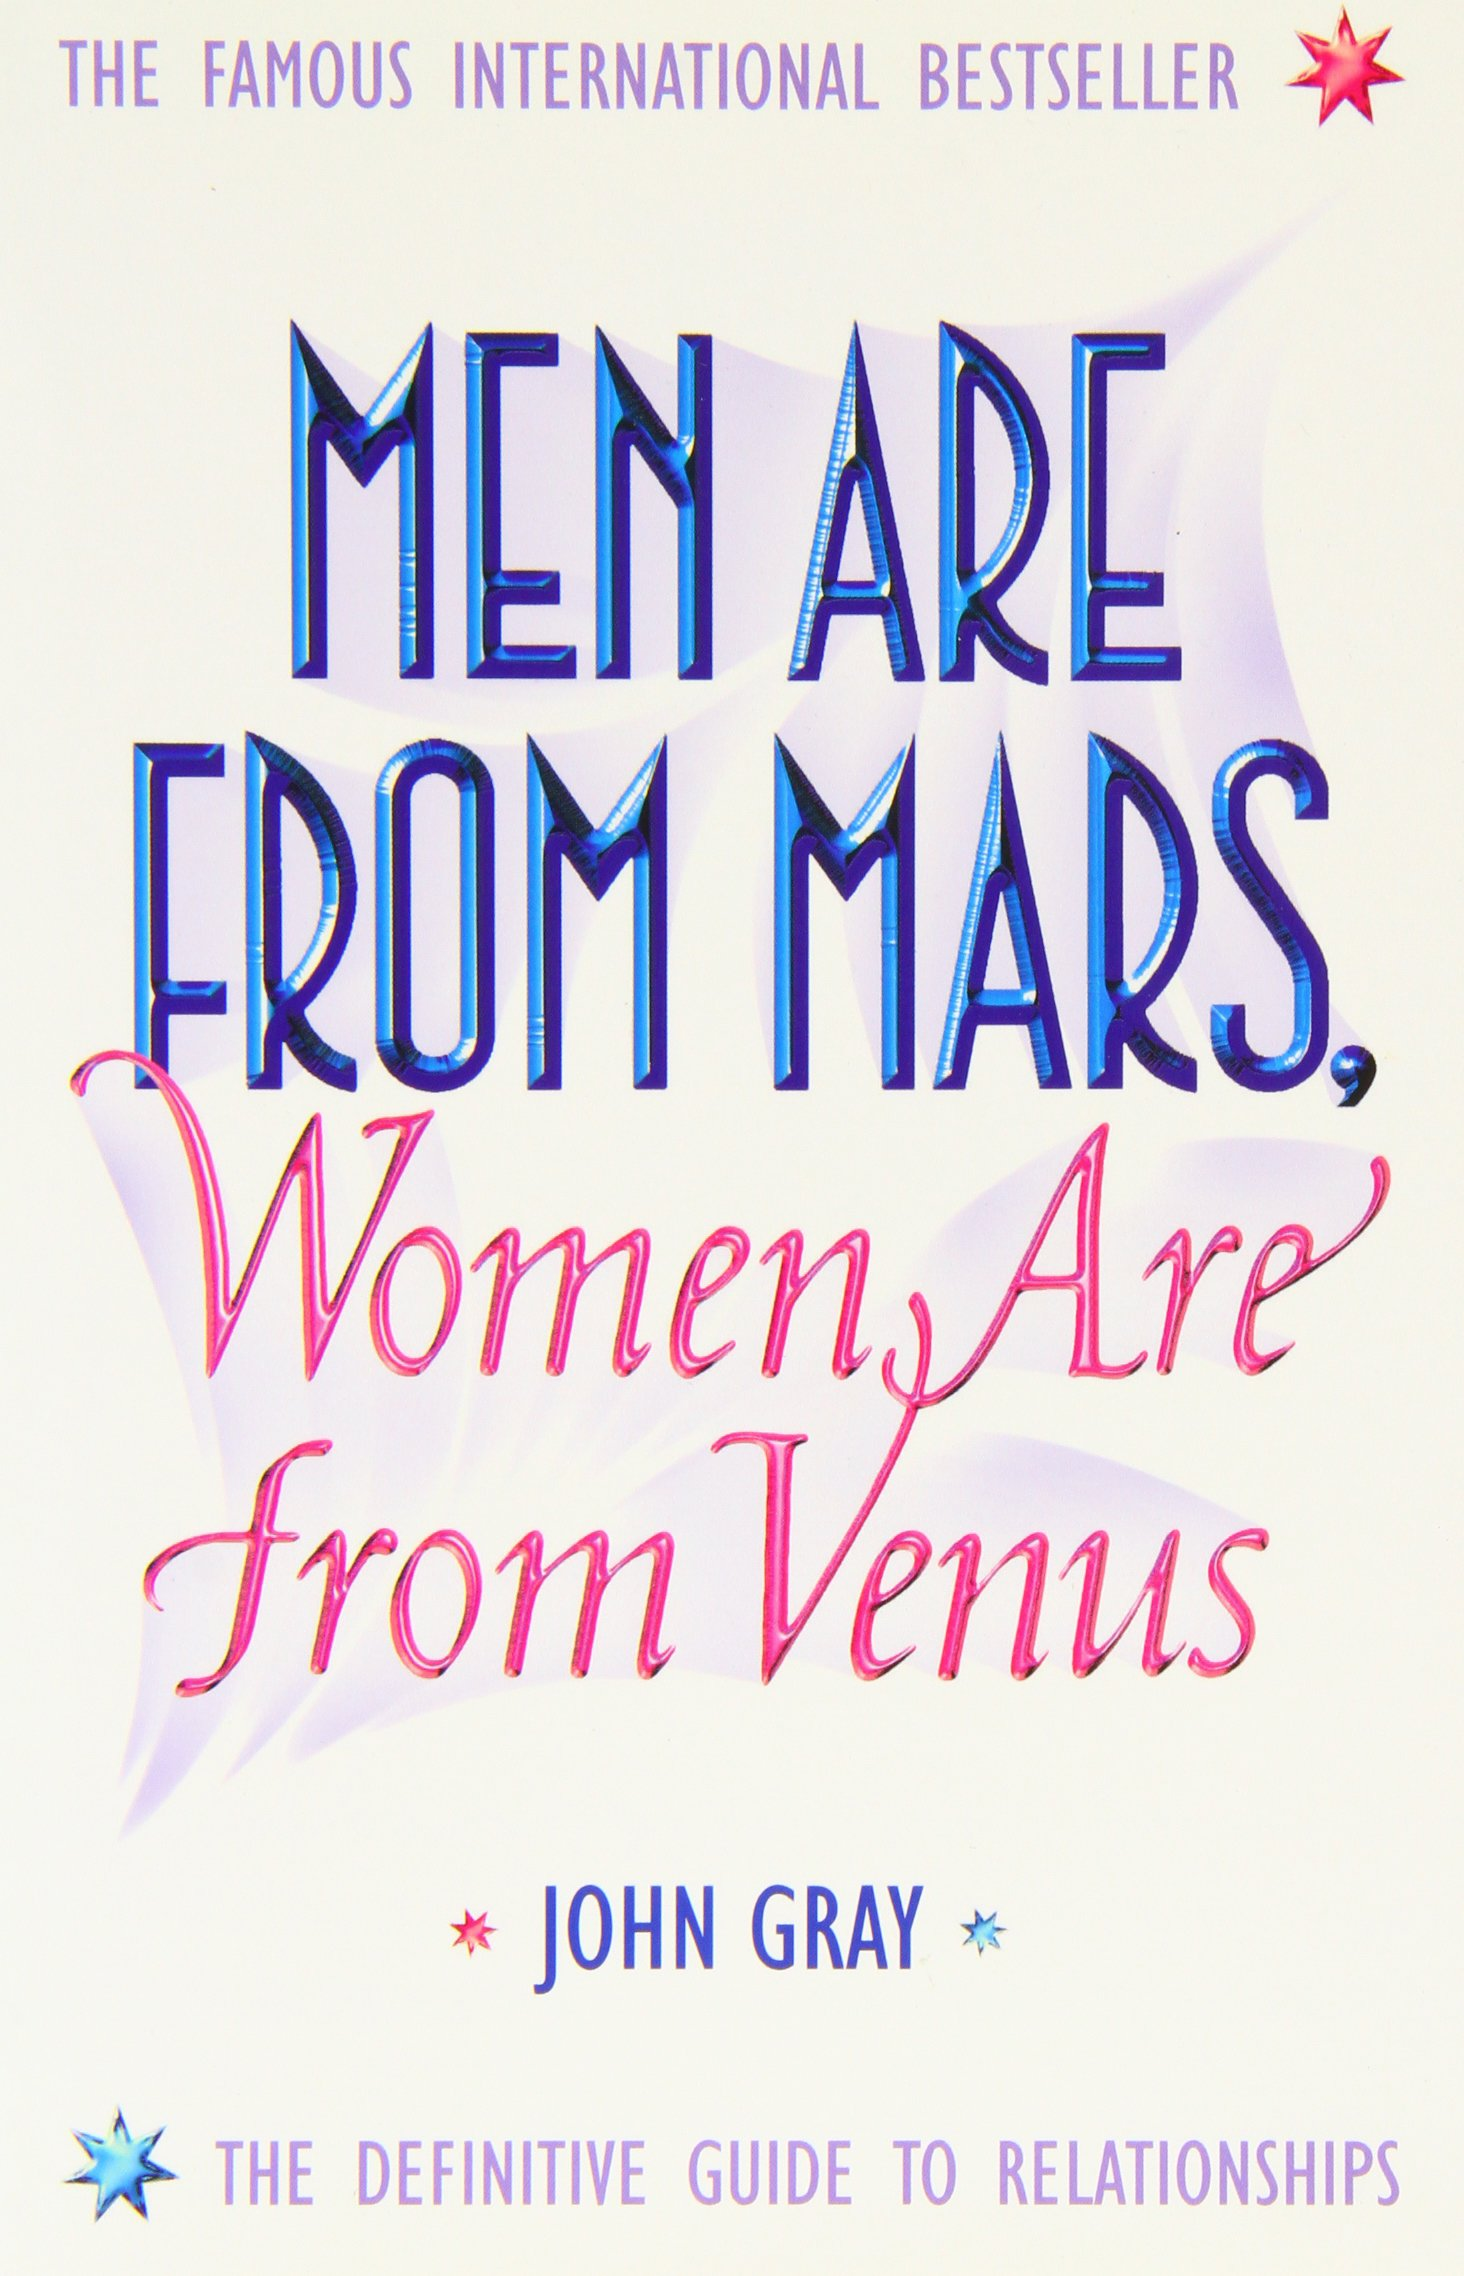 Vegas slots Mars Are Women From Venu Men Are From the web